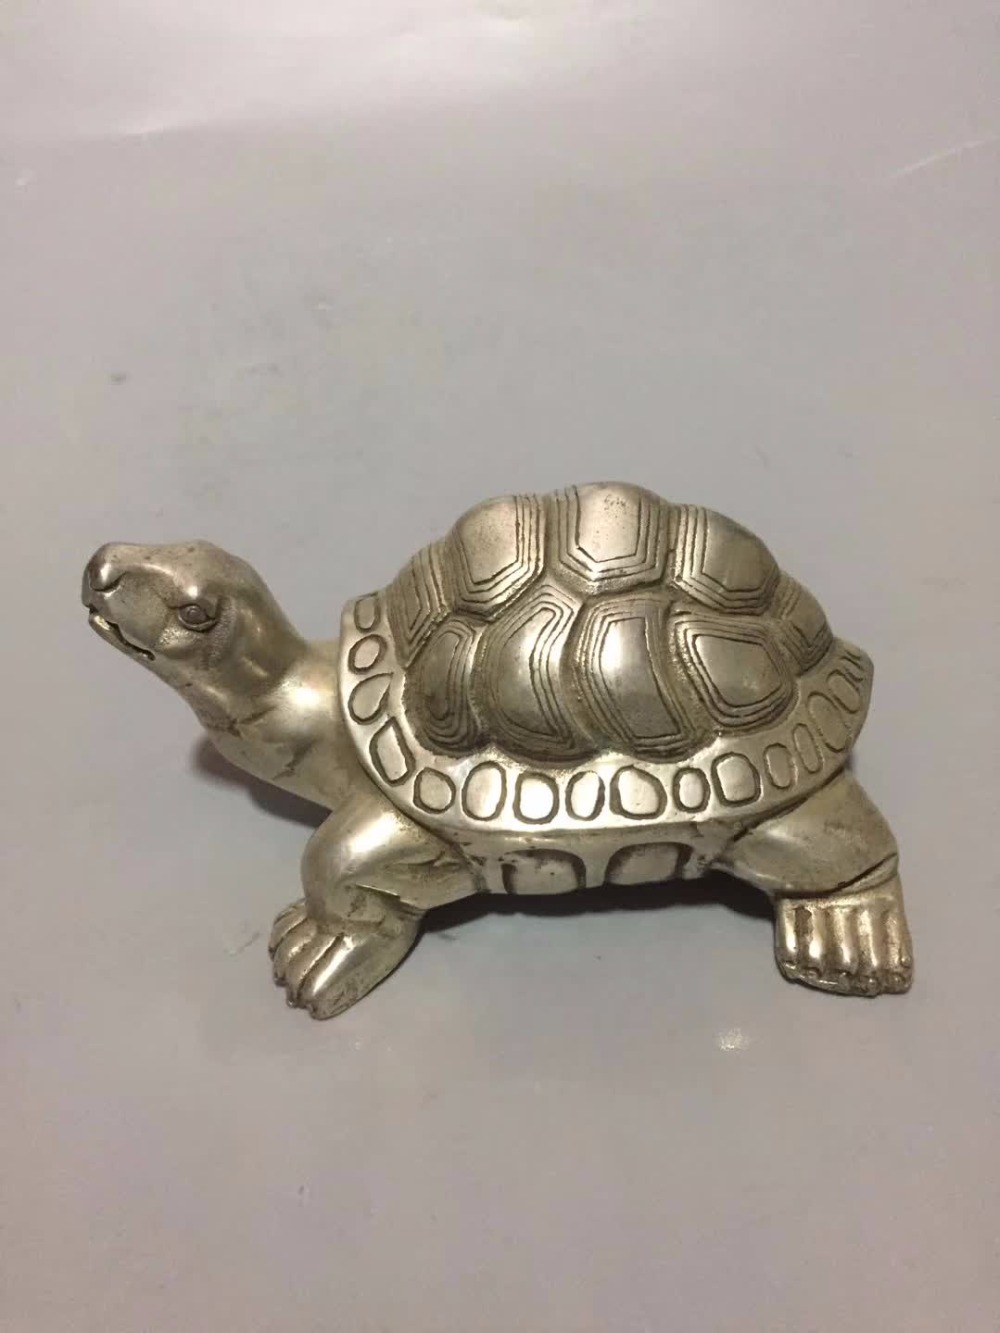 Collection tibet argent tortue statue, maison/bureau bureau décoration feng shui tortue sculpture